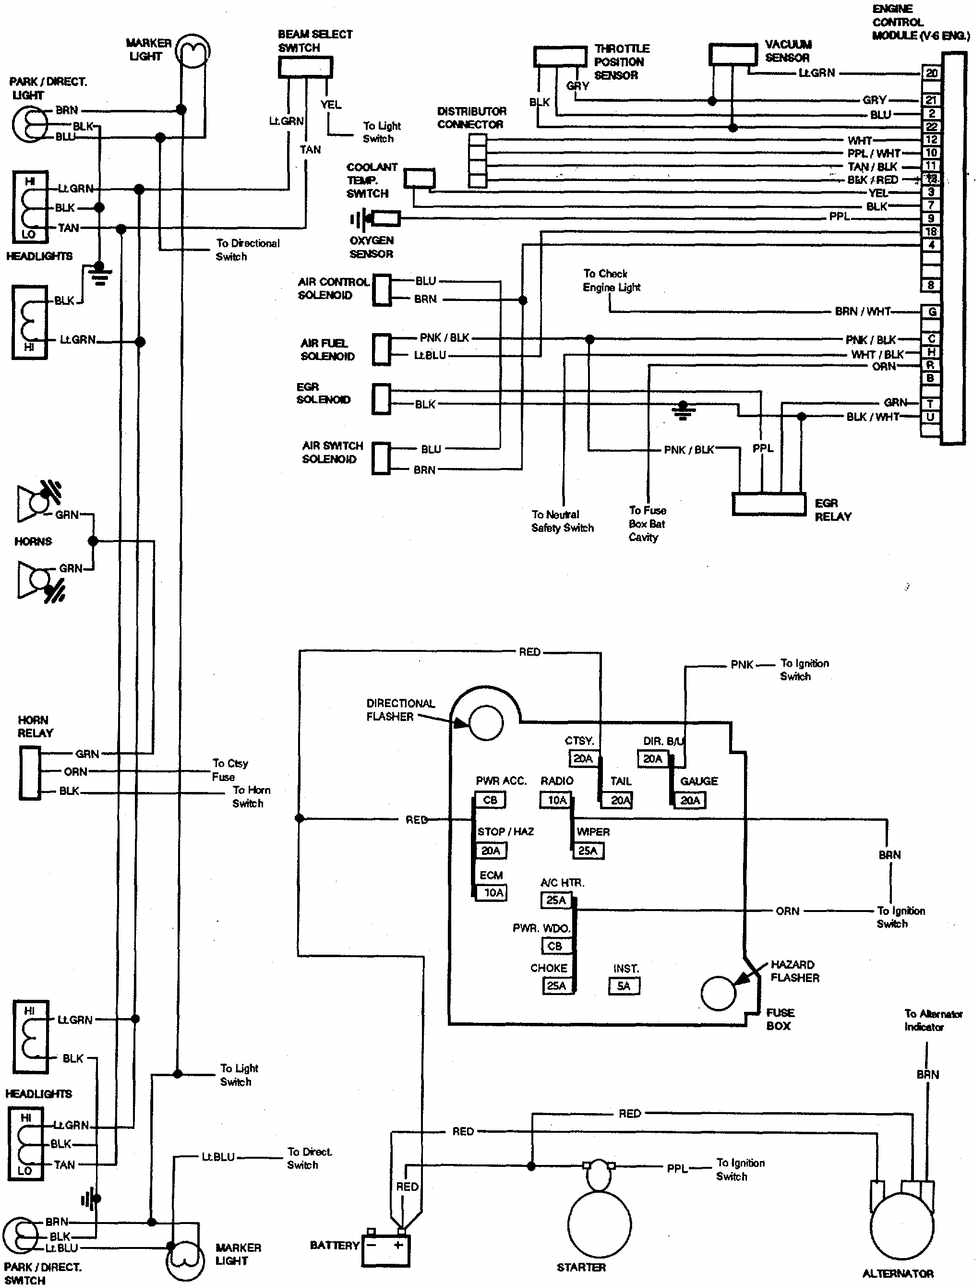 57 Chevy Starter Wiring Diagram as well 72 Chevy C10 Engine Wiring Diagram besides 246931 Rally Pac Tach Question besides 1967 Mustang Wiring And Vacuum Diagrams also 981049 Pulling Column 67 Tilt. on 1965 c10 headlight switch wiring diagram